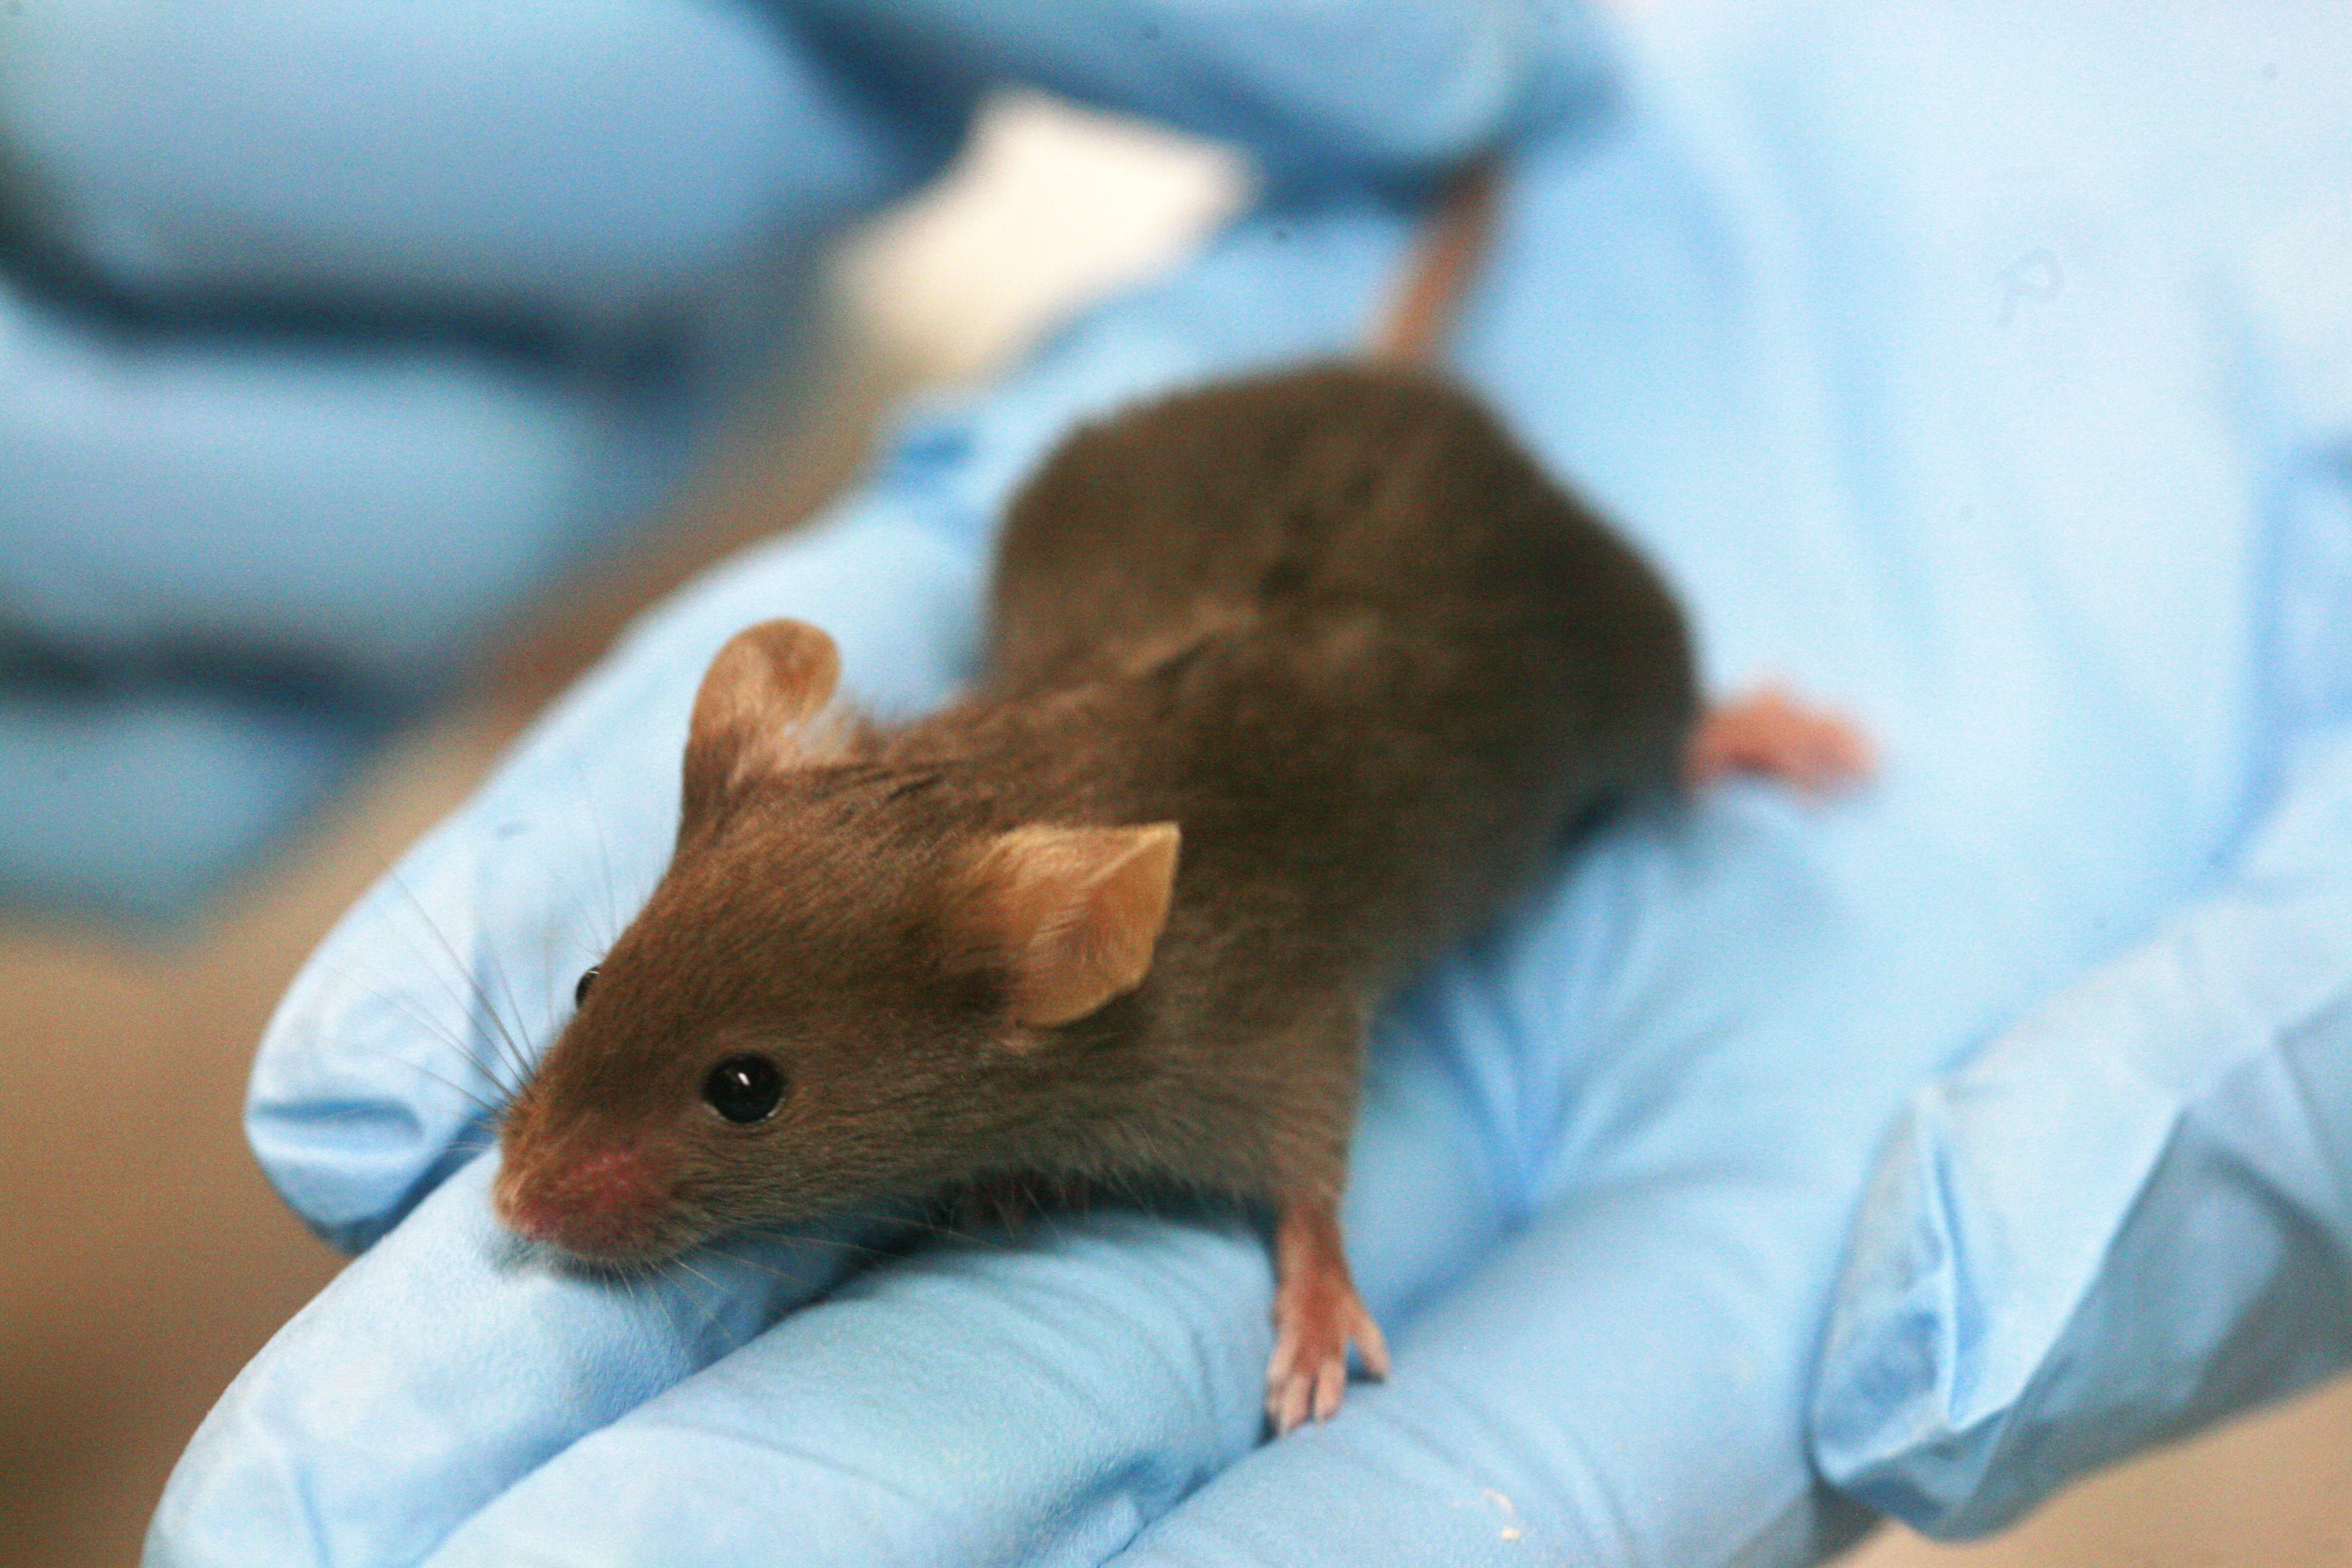 Lab_mouse_Credit-Rama Wikimedia Commons